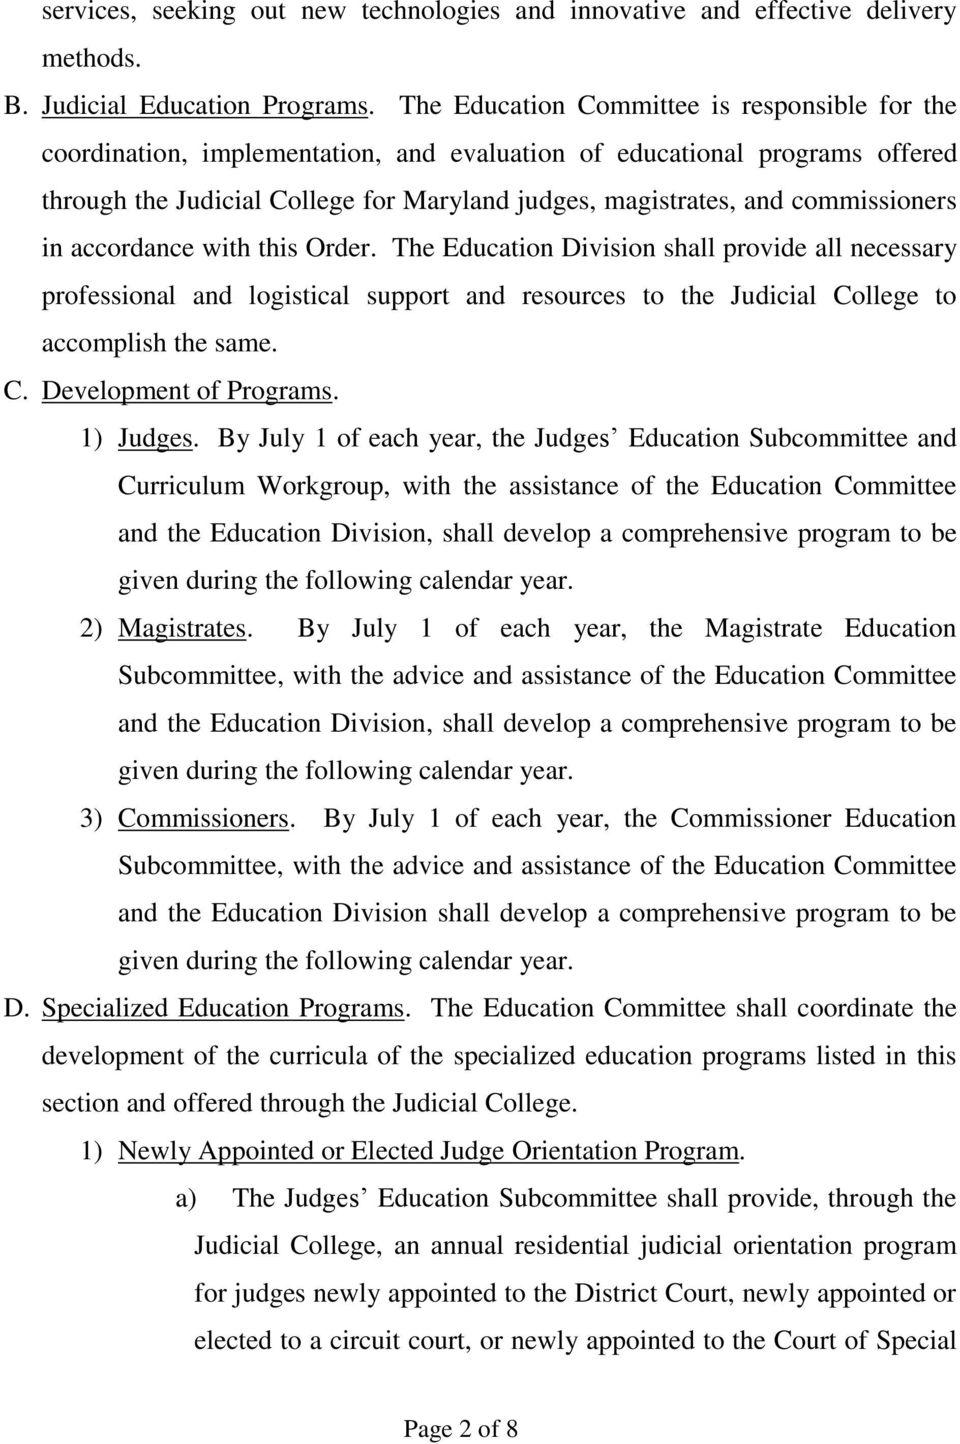 commissioners in accordance with this Order. The Education Division shall provide all necessary professional and logistical support and resources to the Judicial College to accomplish the same. C. Development of Programs.